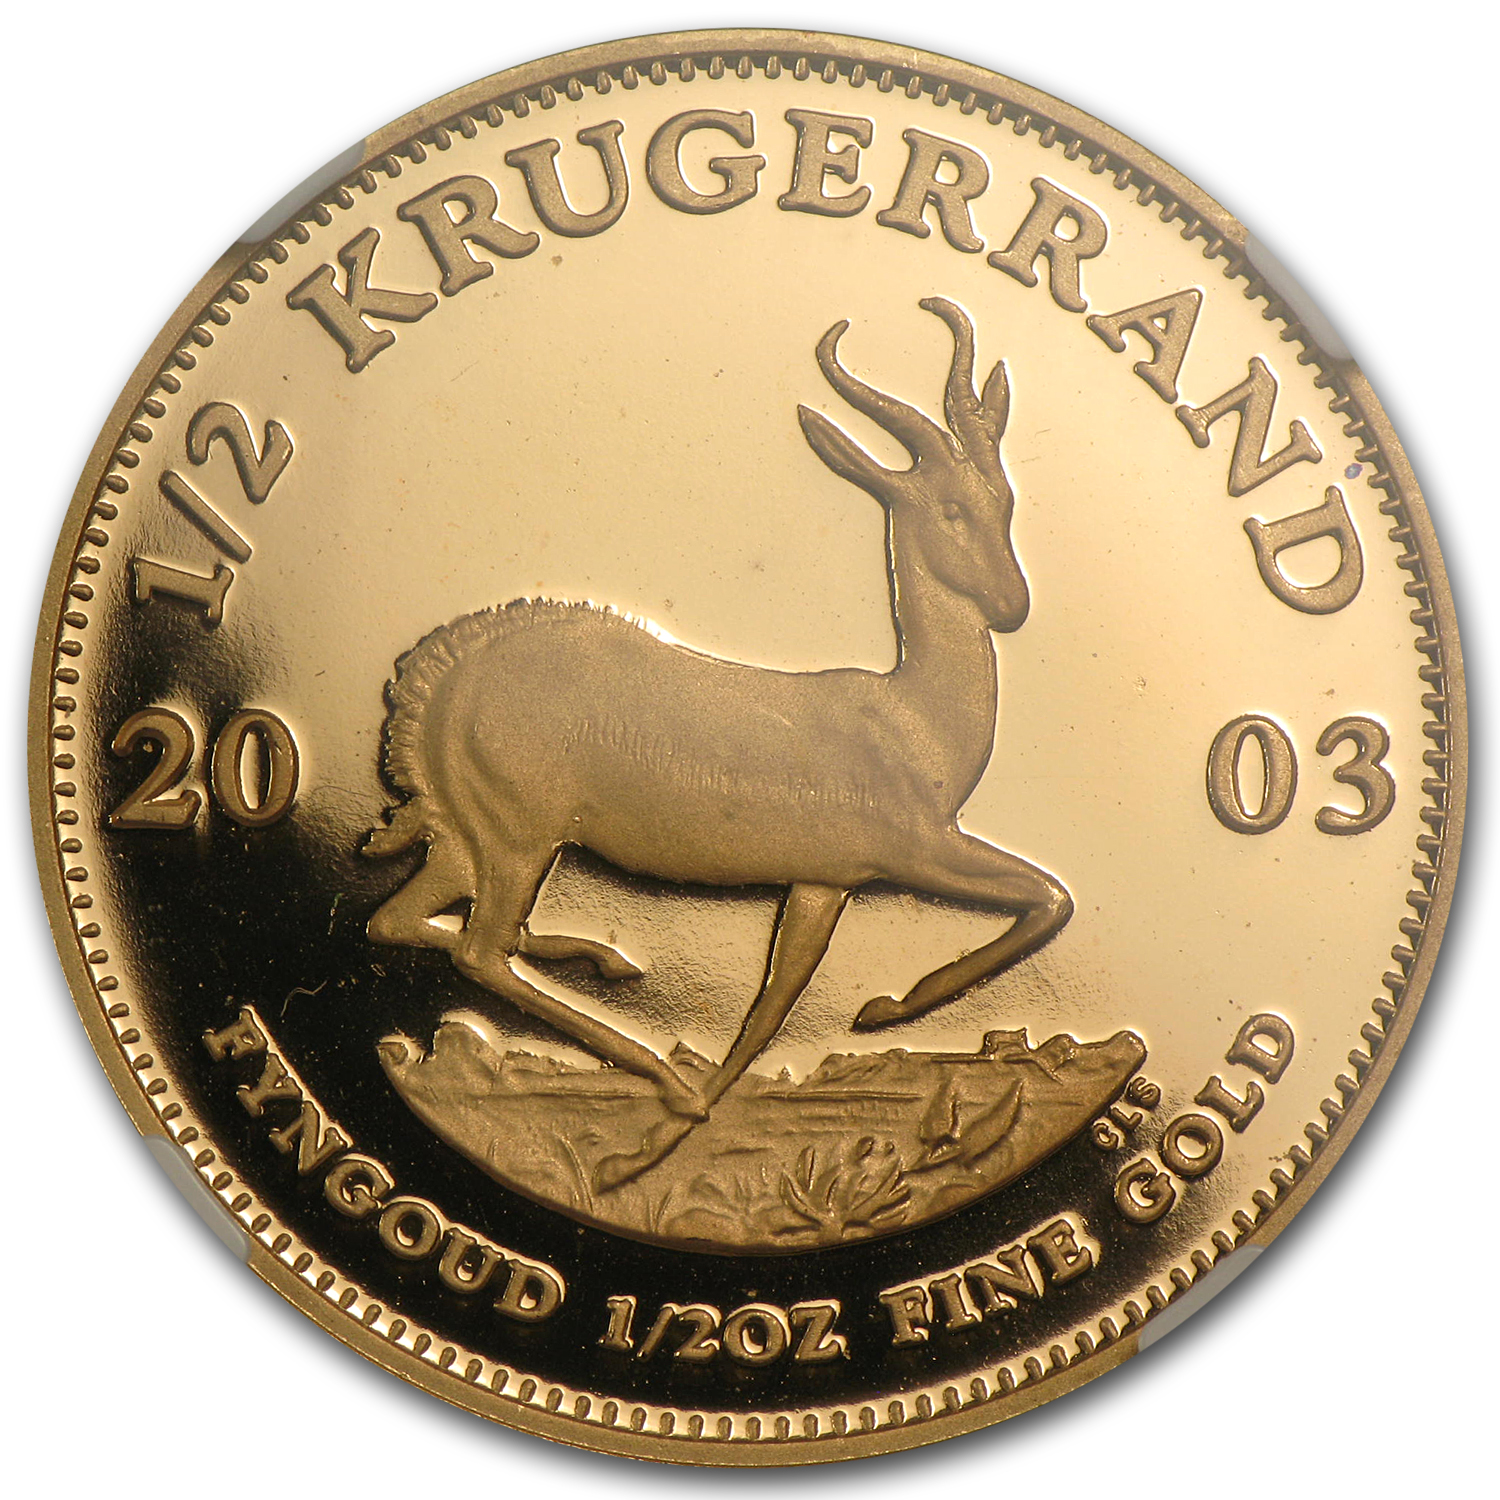 2003 South Africa 1/2 oz Gold Krugerrand PF-68 NGC